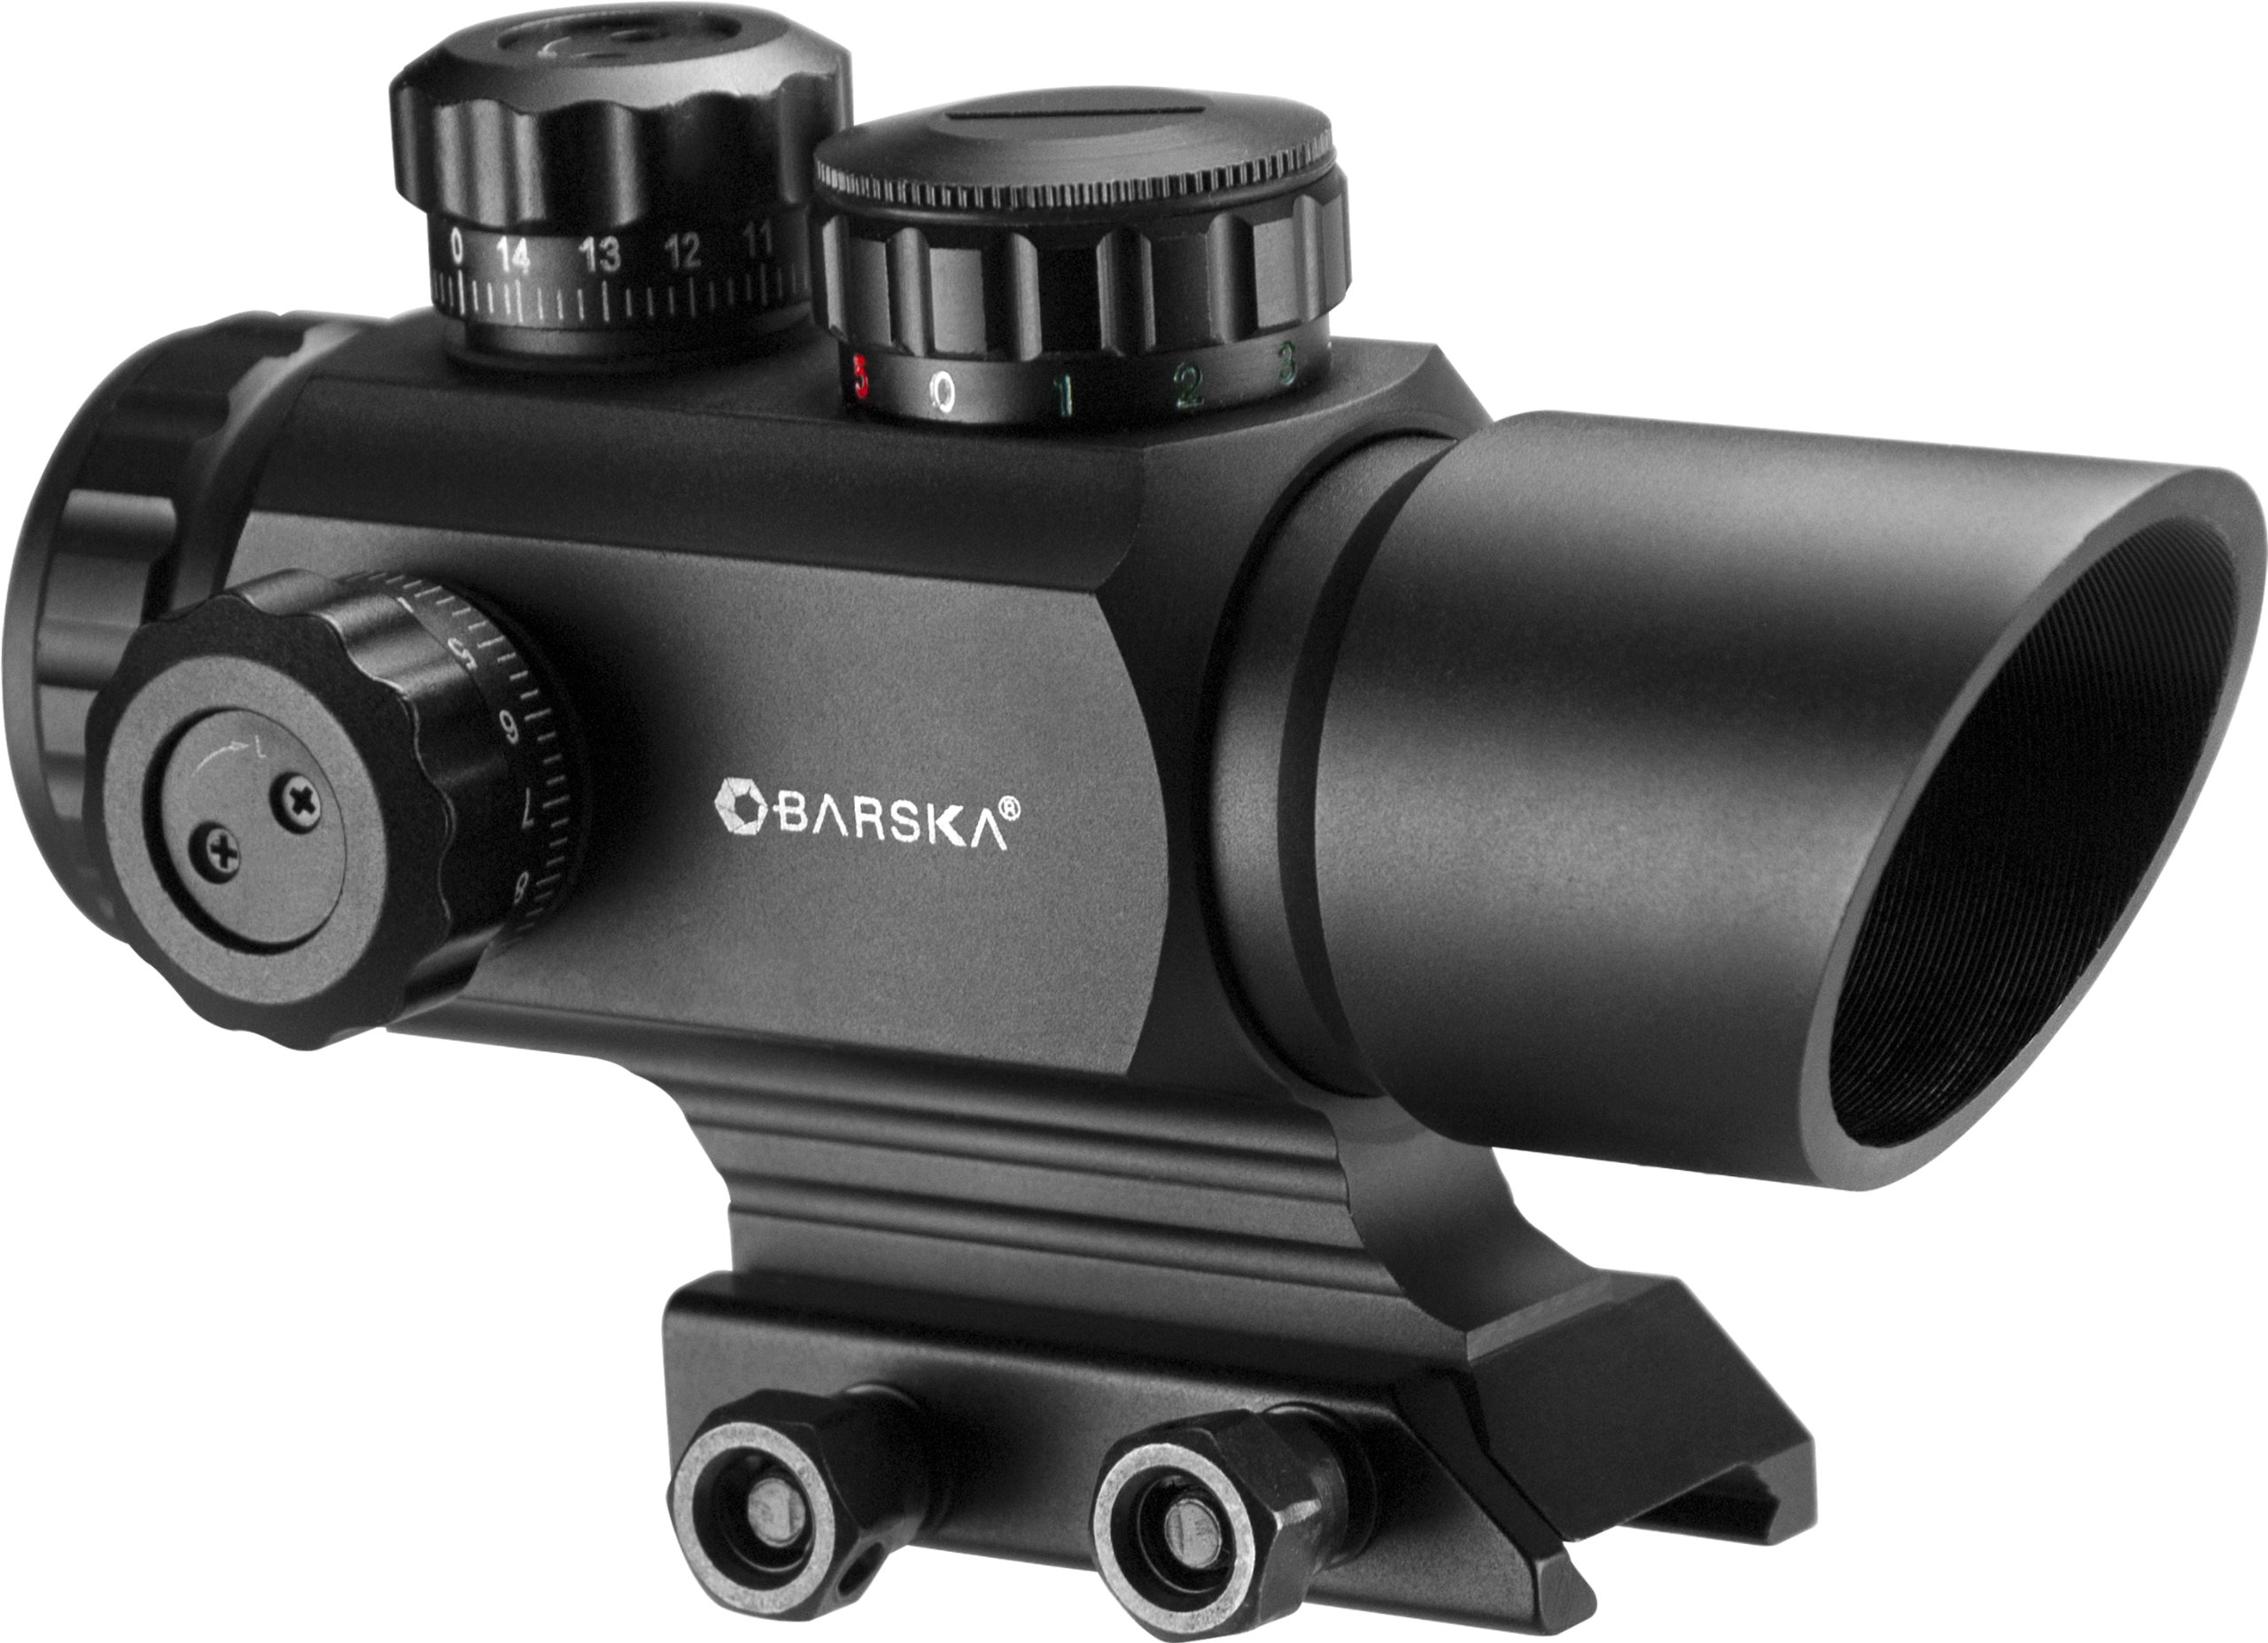 BARSKA AC12176 Multi Reticle Red Dot Optics, 1x 35mm, Matte Black by BARSKA